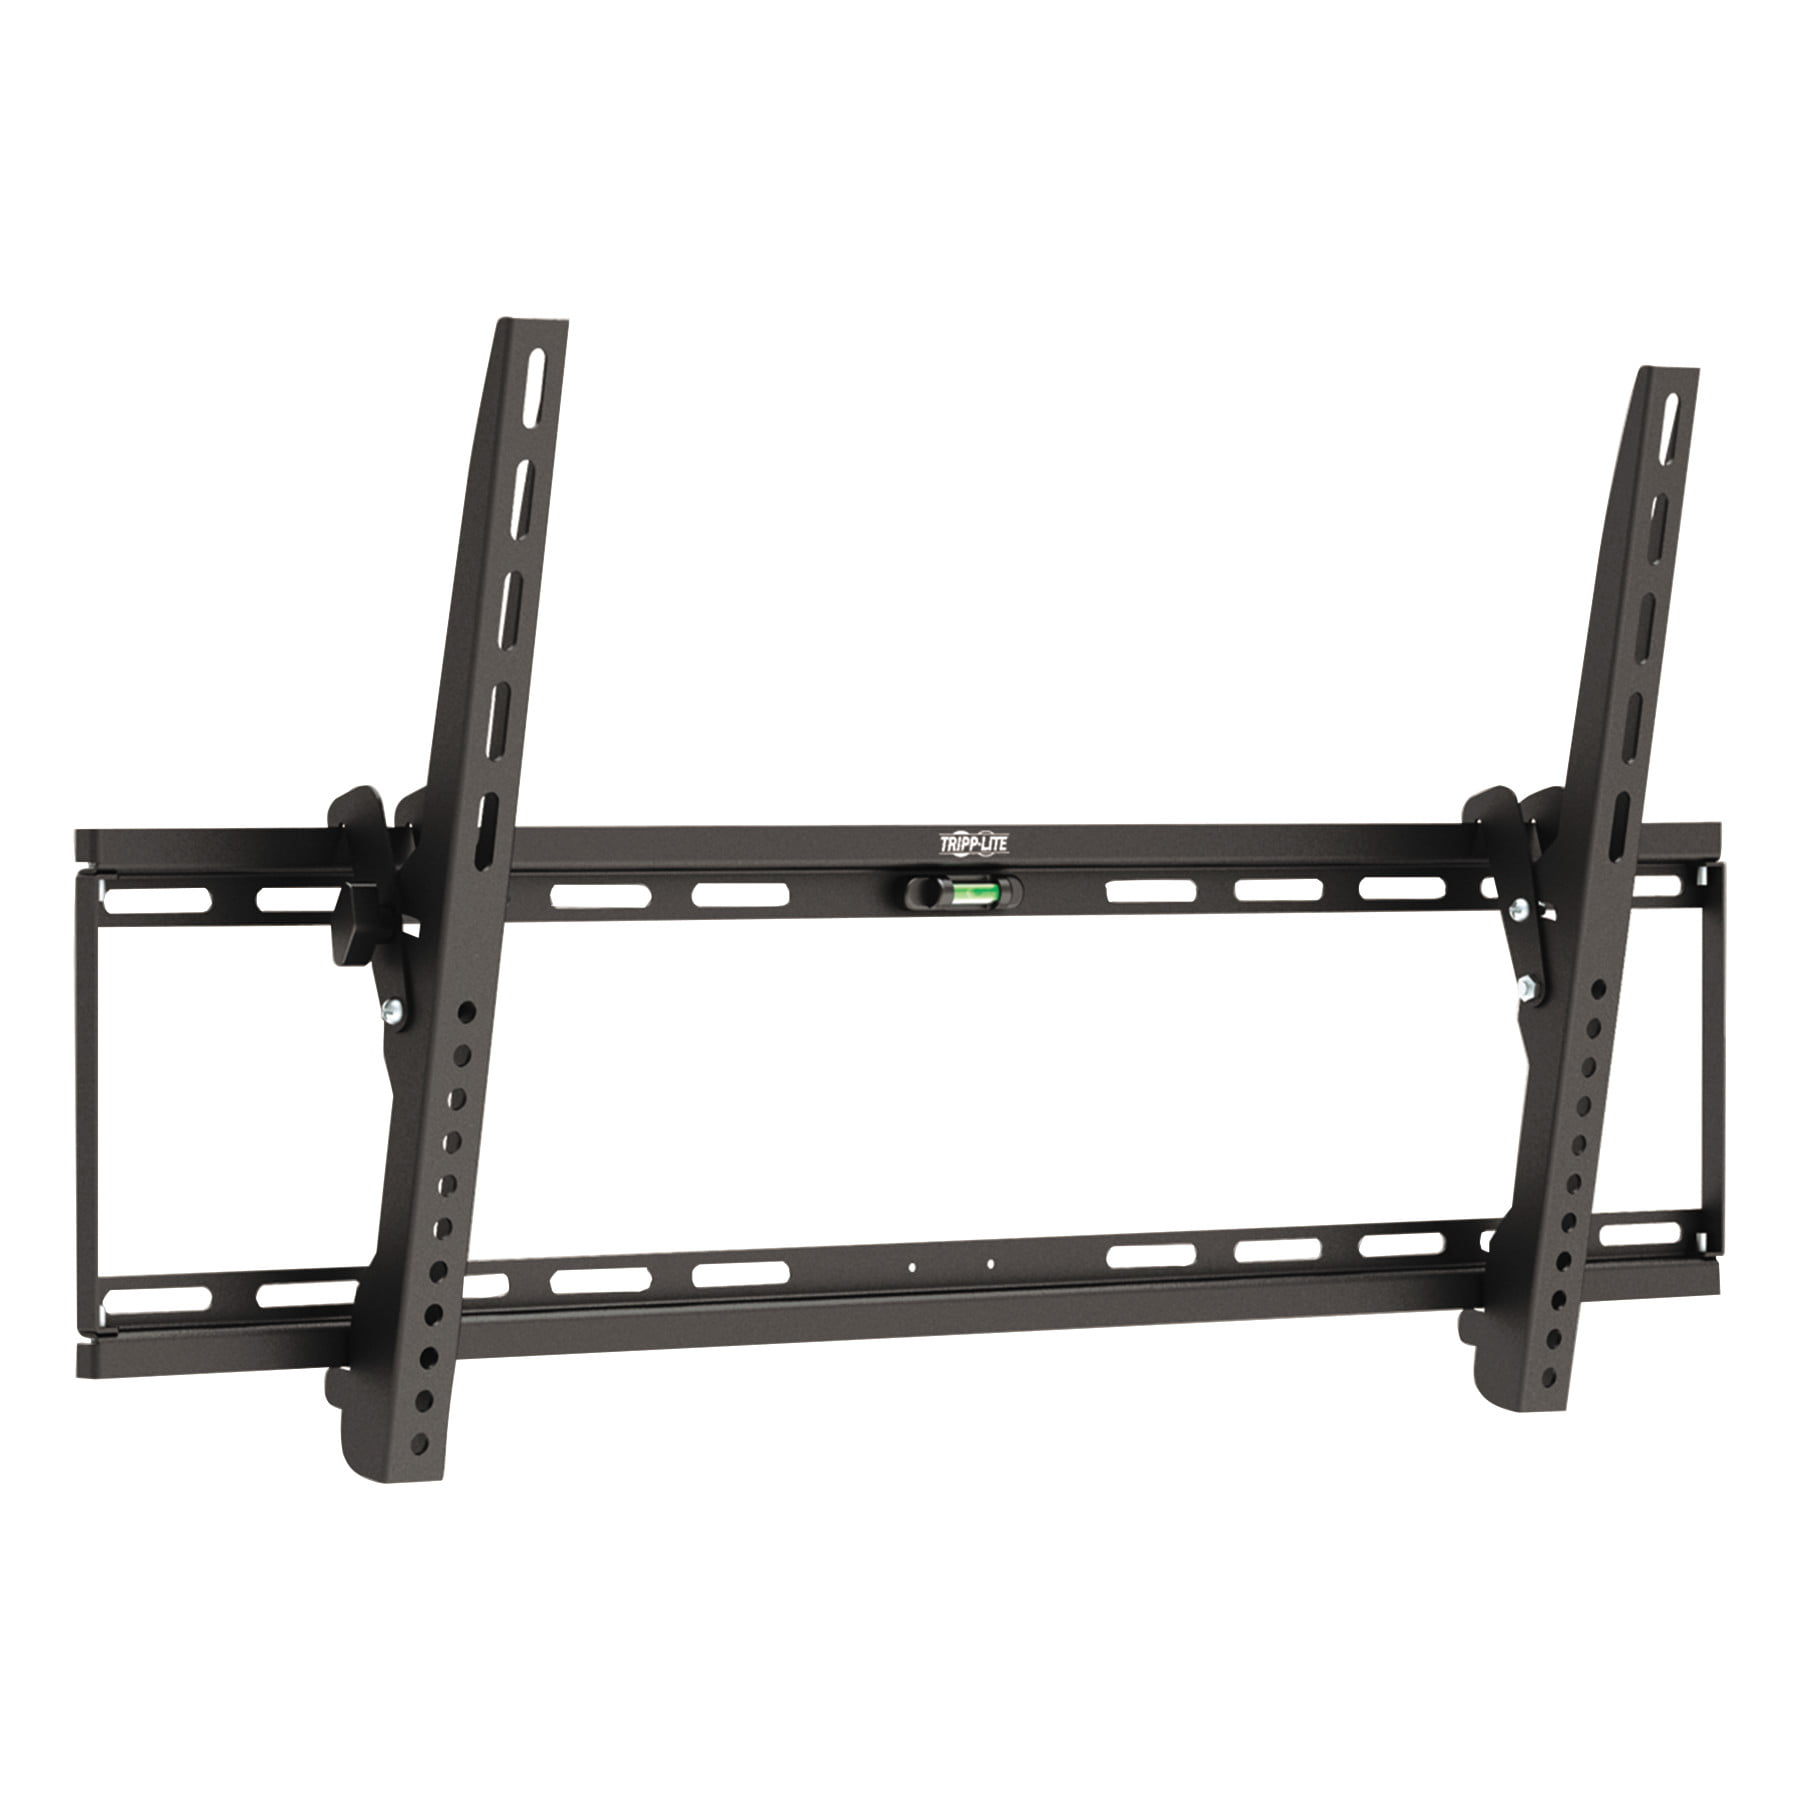 Tripp Lite Wall Mount, Steel Aluminum, 8 3 4 x 2 1 4 x 35 1 8, Black by Tripp Lite